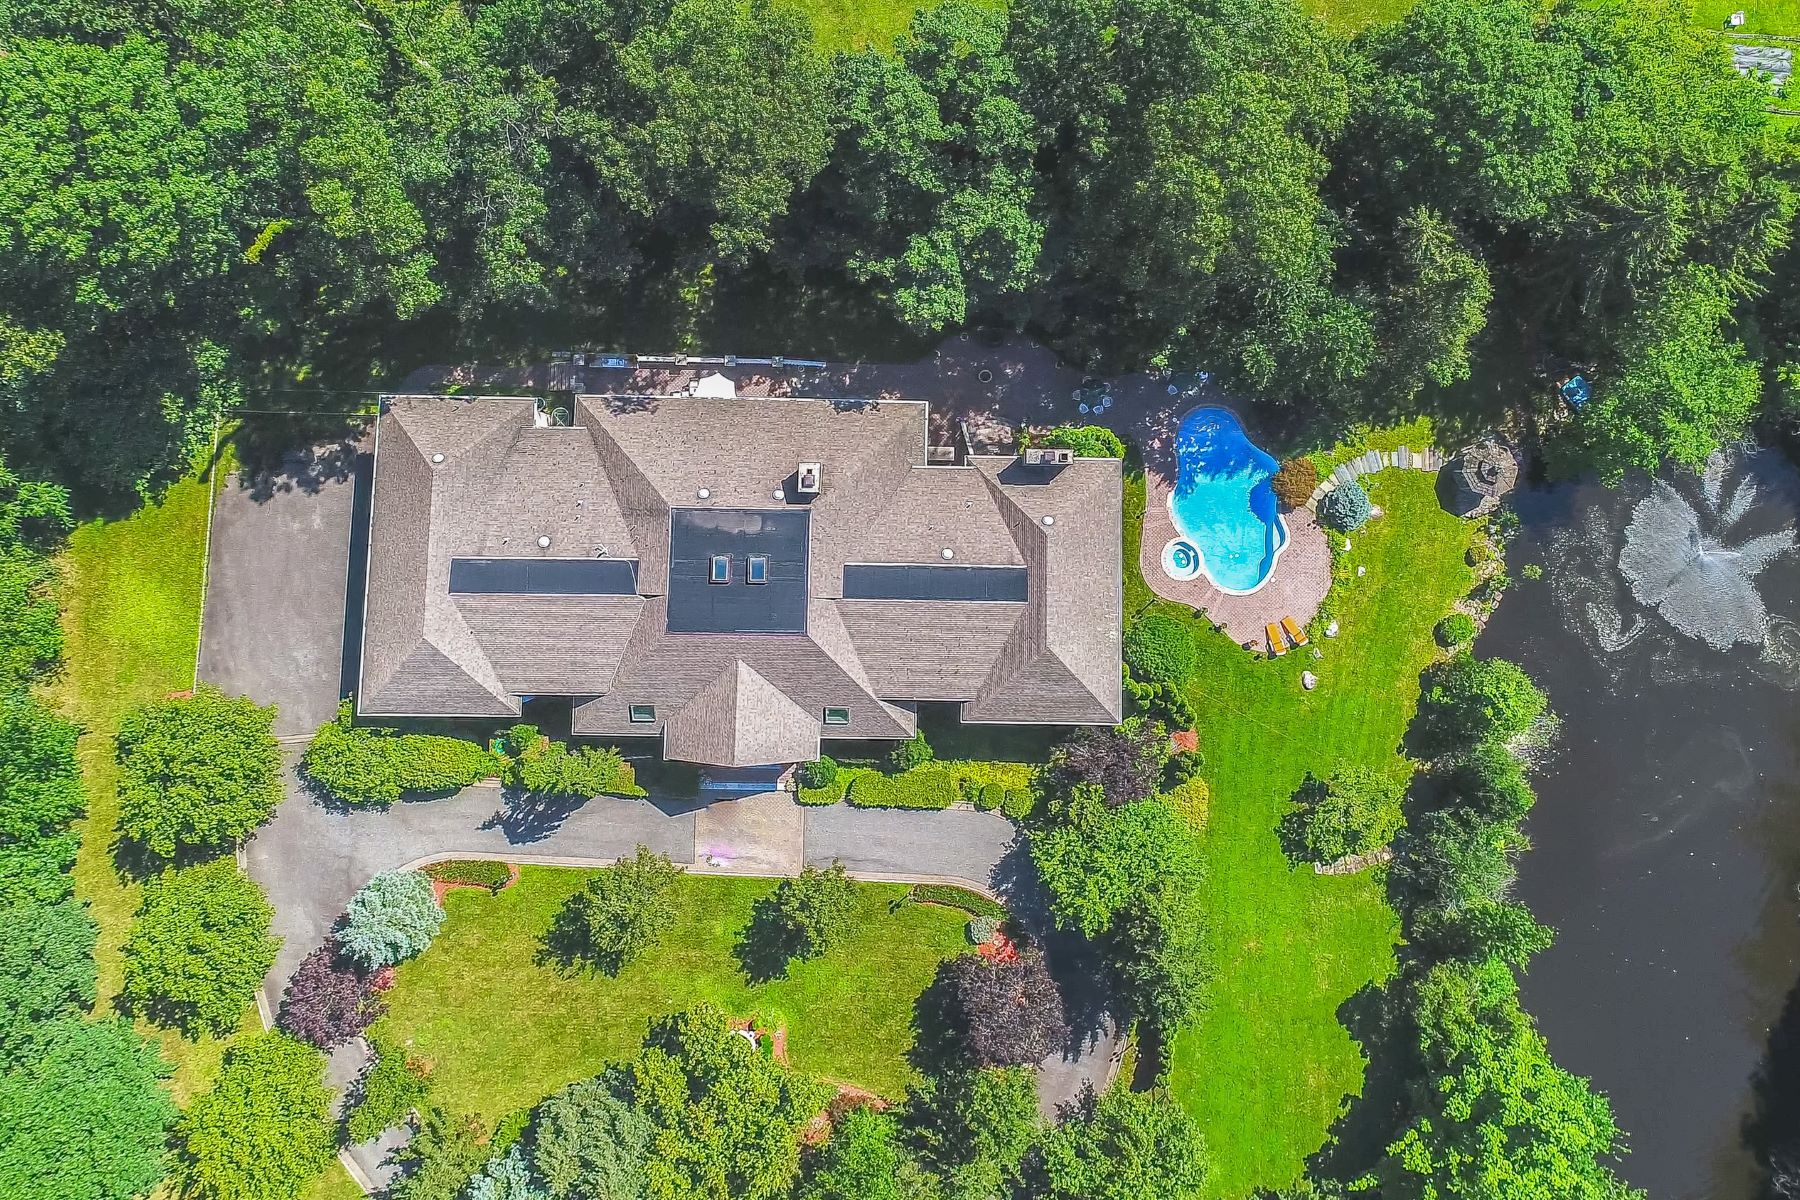 Single Family Home for Sale at SOUTH POND ESTATE 3 S Pond Rd Saddle River, New Jersey 07458 United States